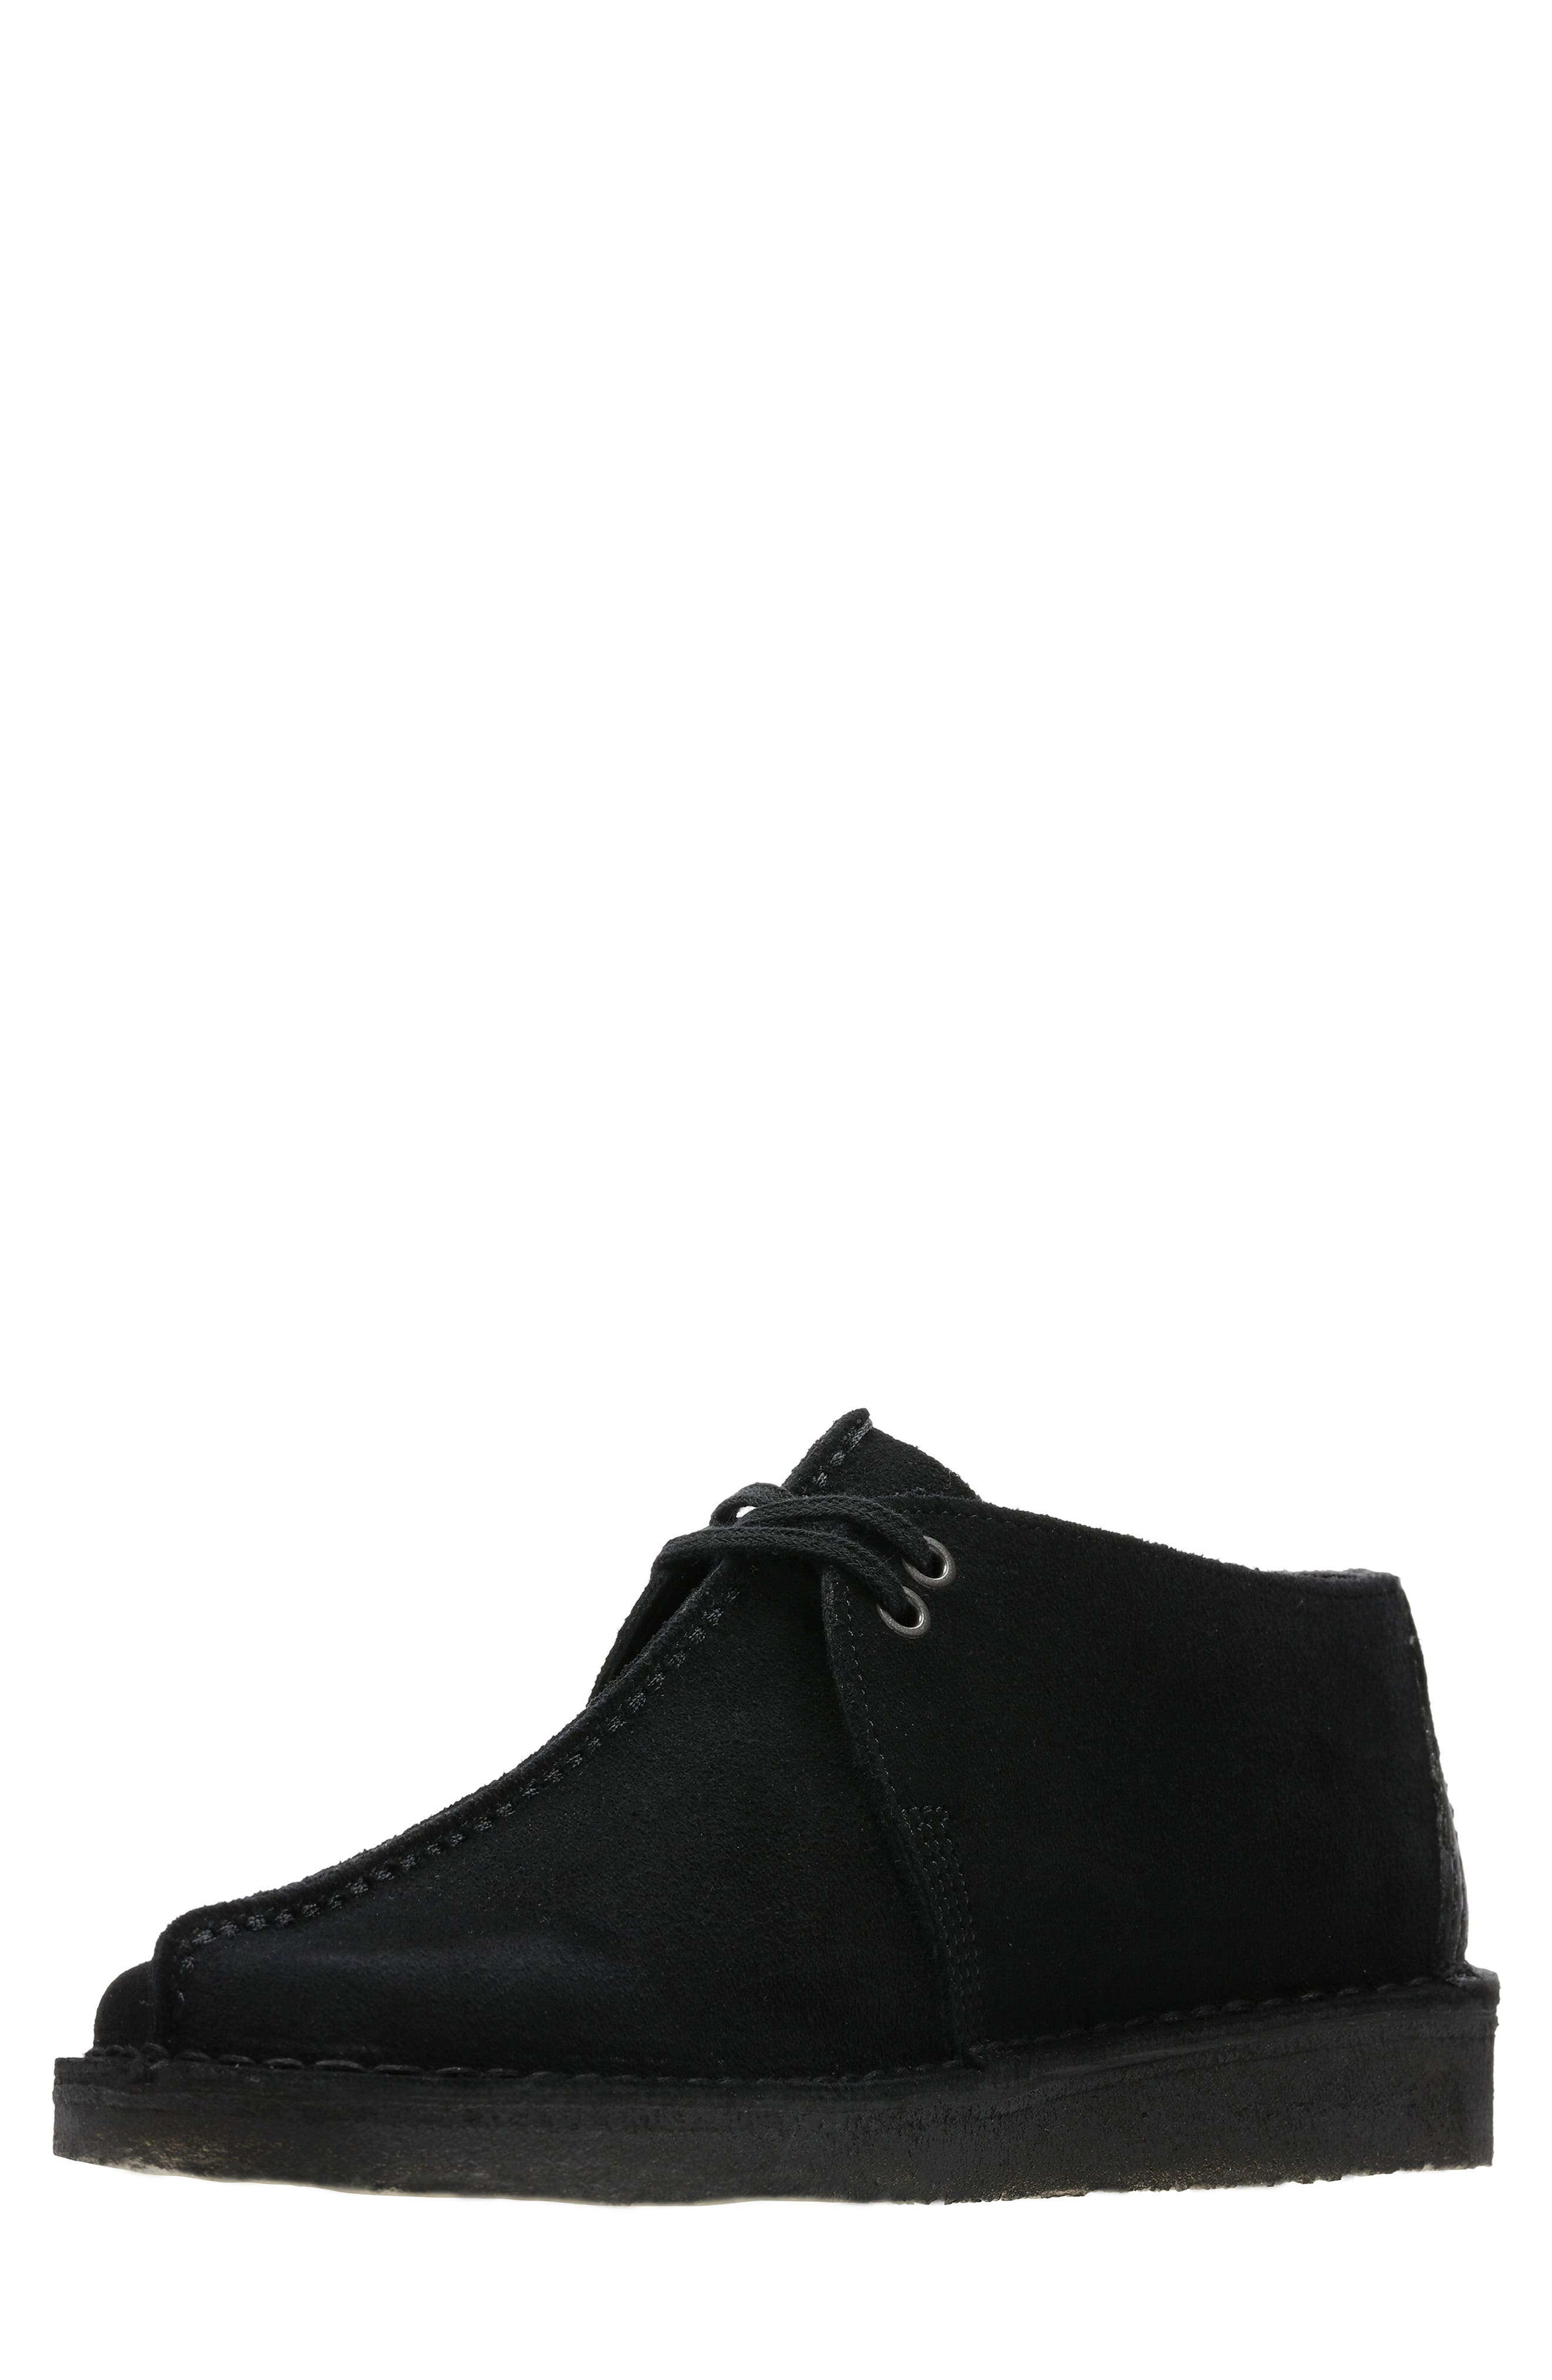 Originals 'Desert - Trek' Oxford,                             Alternate thumbnail 7, color,                             BLACK/BLACK SUEDE